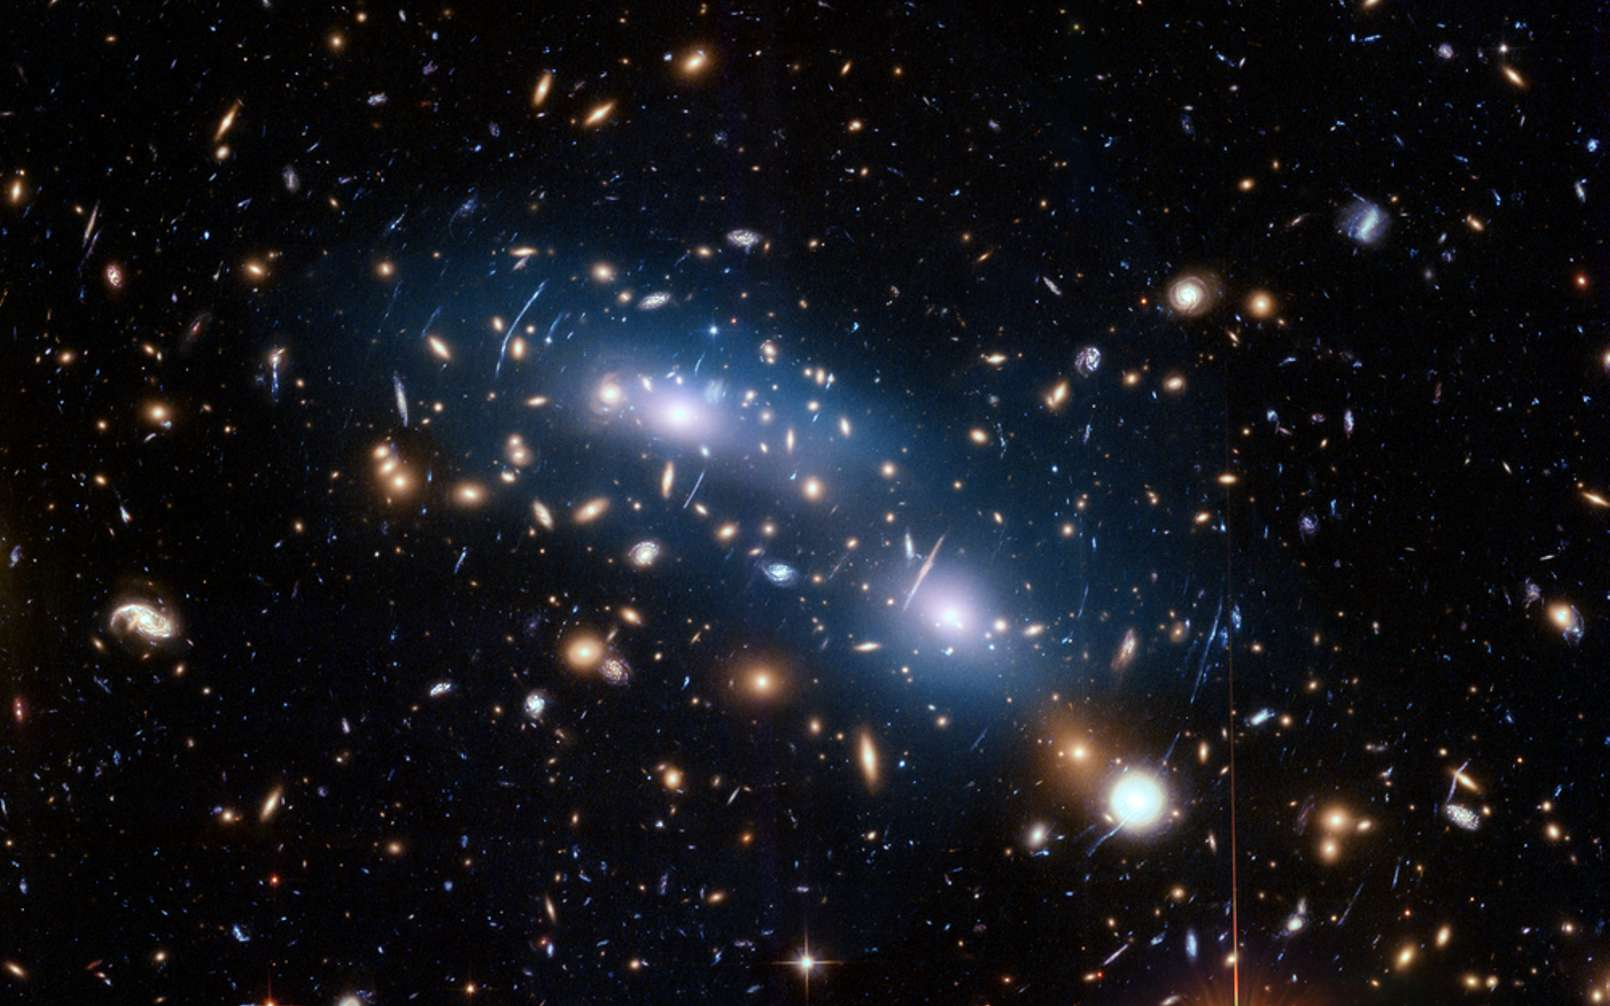 Une lumière diffuse est mise en évidence sur cette image de l'amas de galaxies MACS J0416.1-2403. Il s'agit de la lumière intra-amas produite par les étoiles arrachées des galaxies par les forces de marée. © Nasa, ESA, and M. Montes (University of New South Wales)